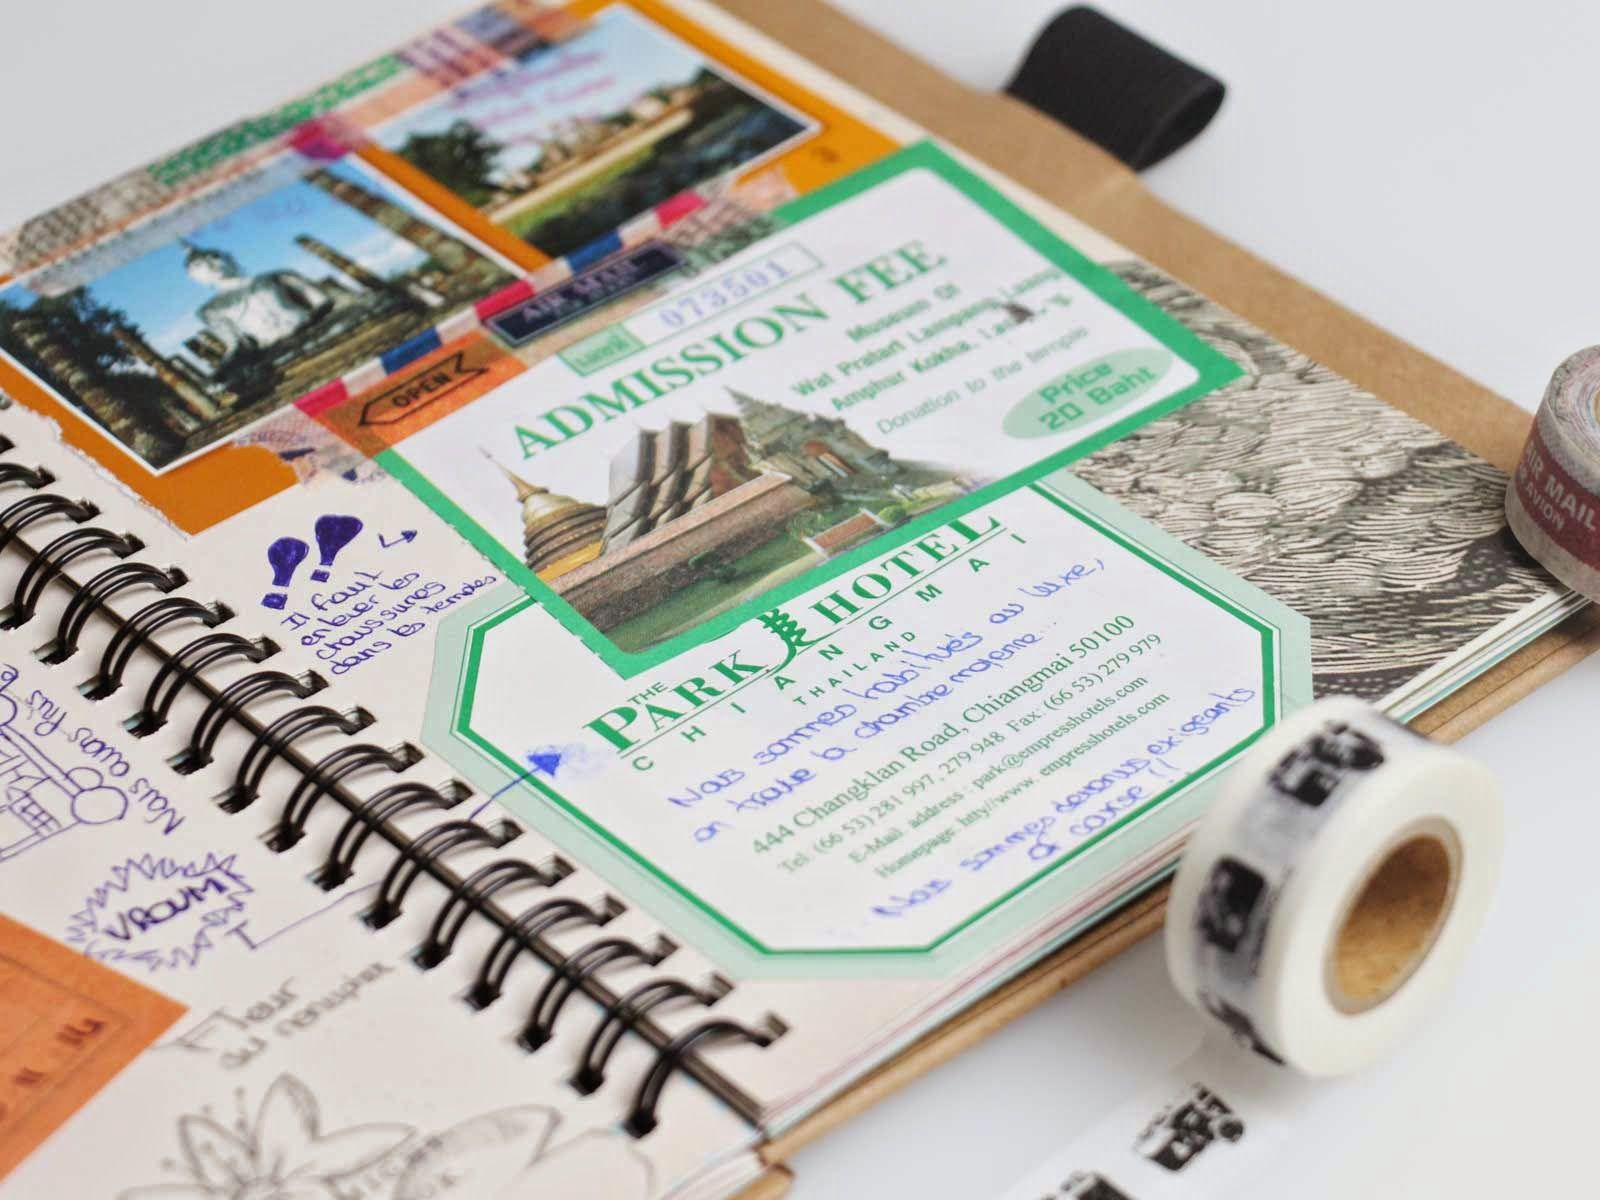 travel journal pages and inspiration ideas for travel journaling